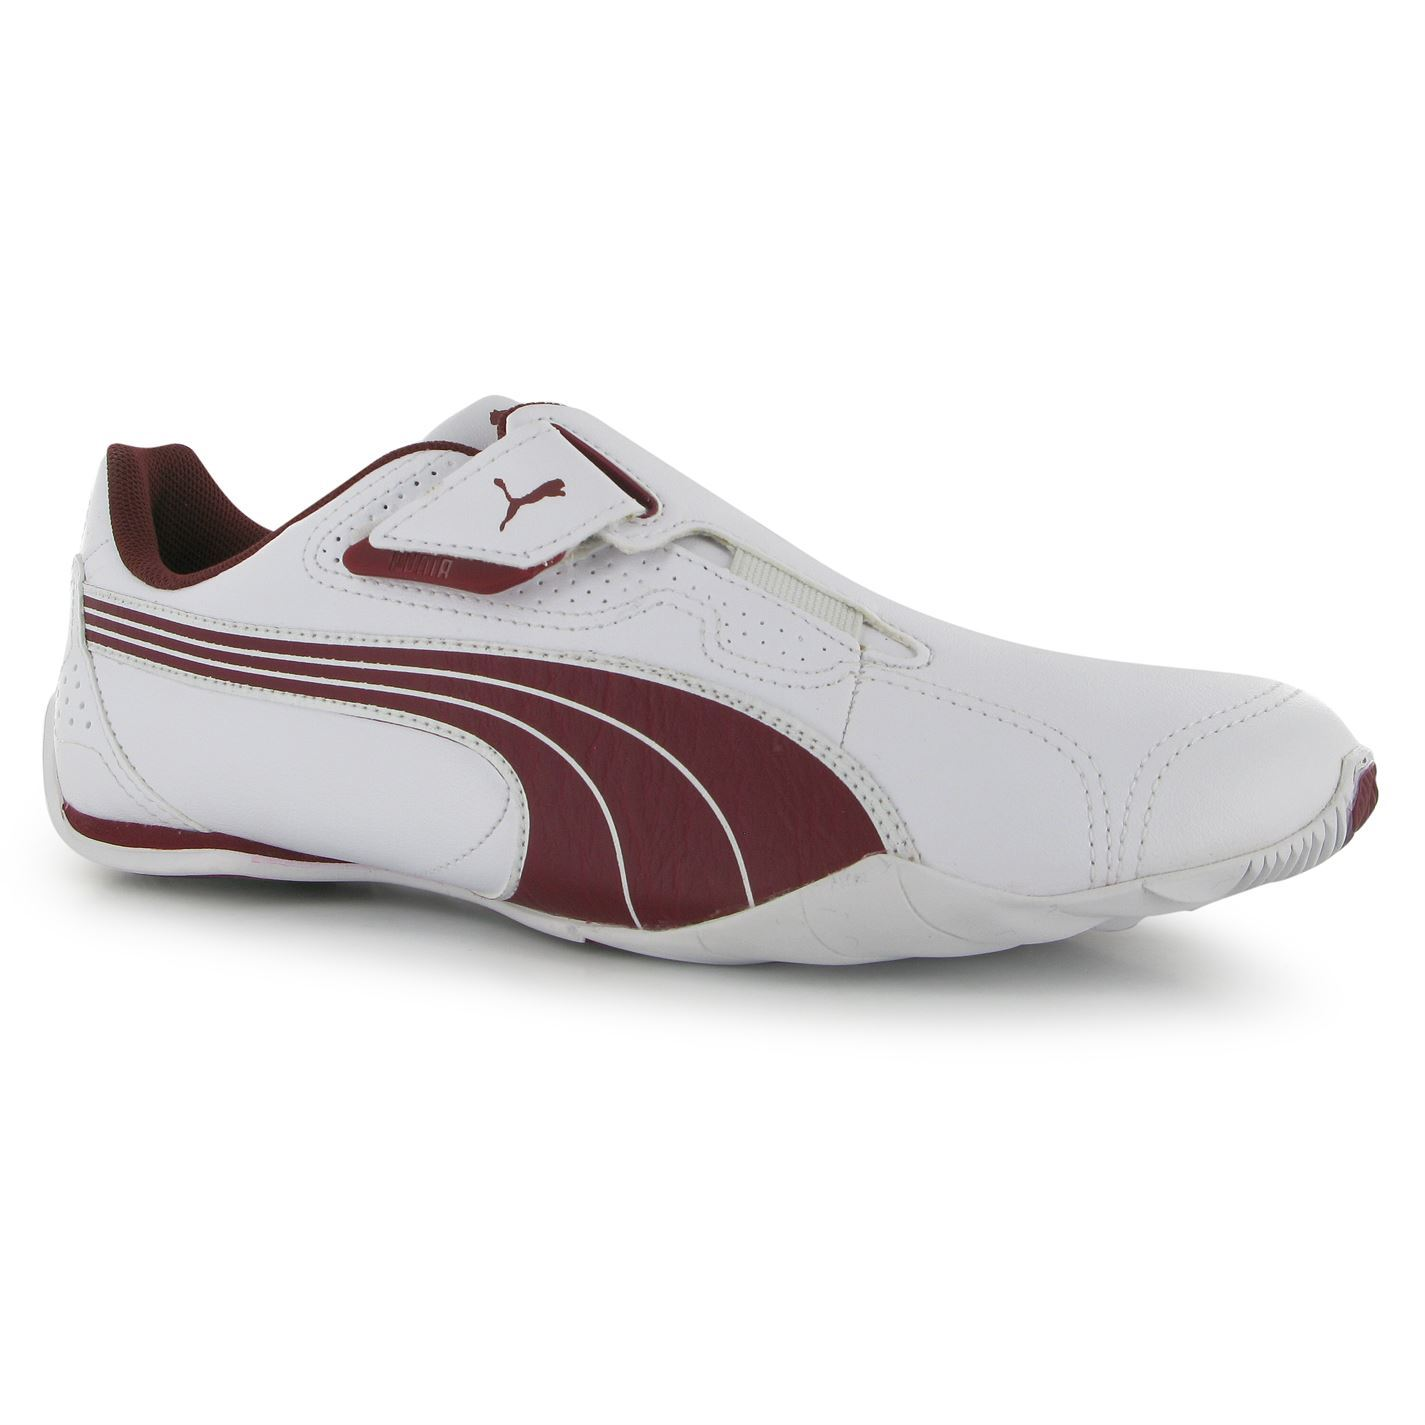 Puma Womens Fit Soccer Shoes